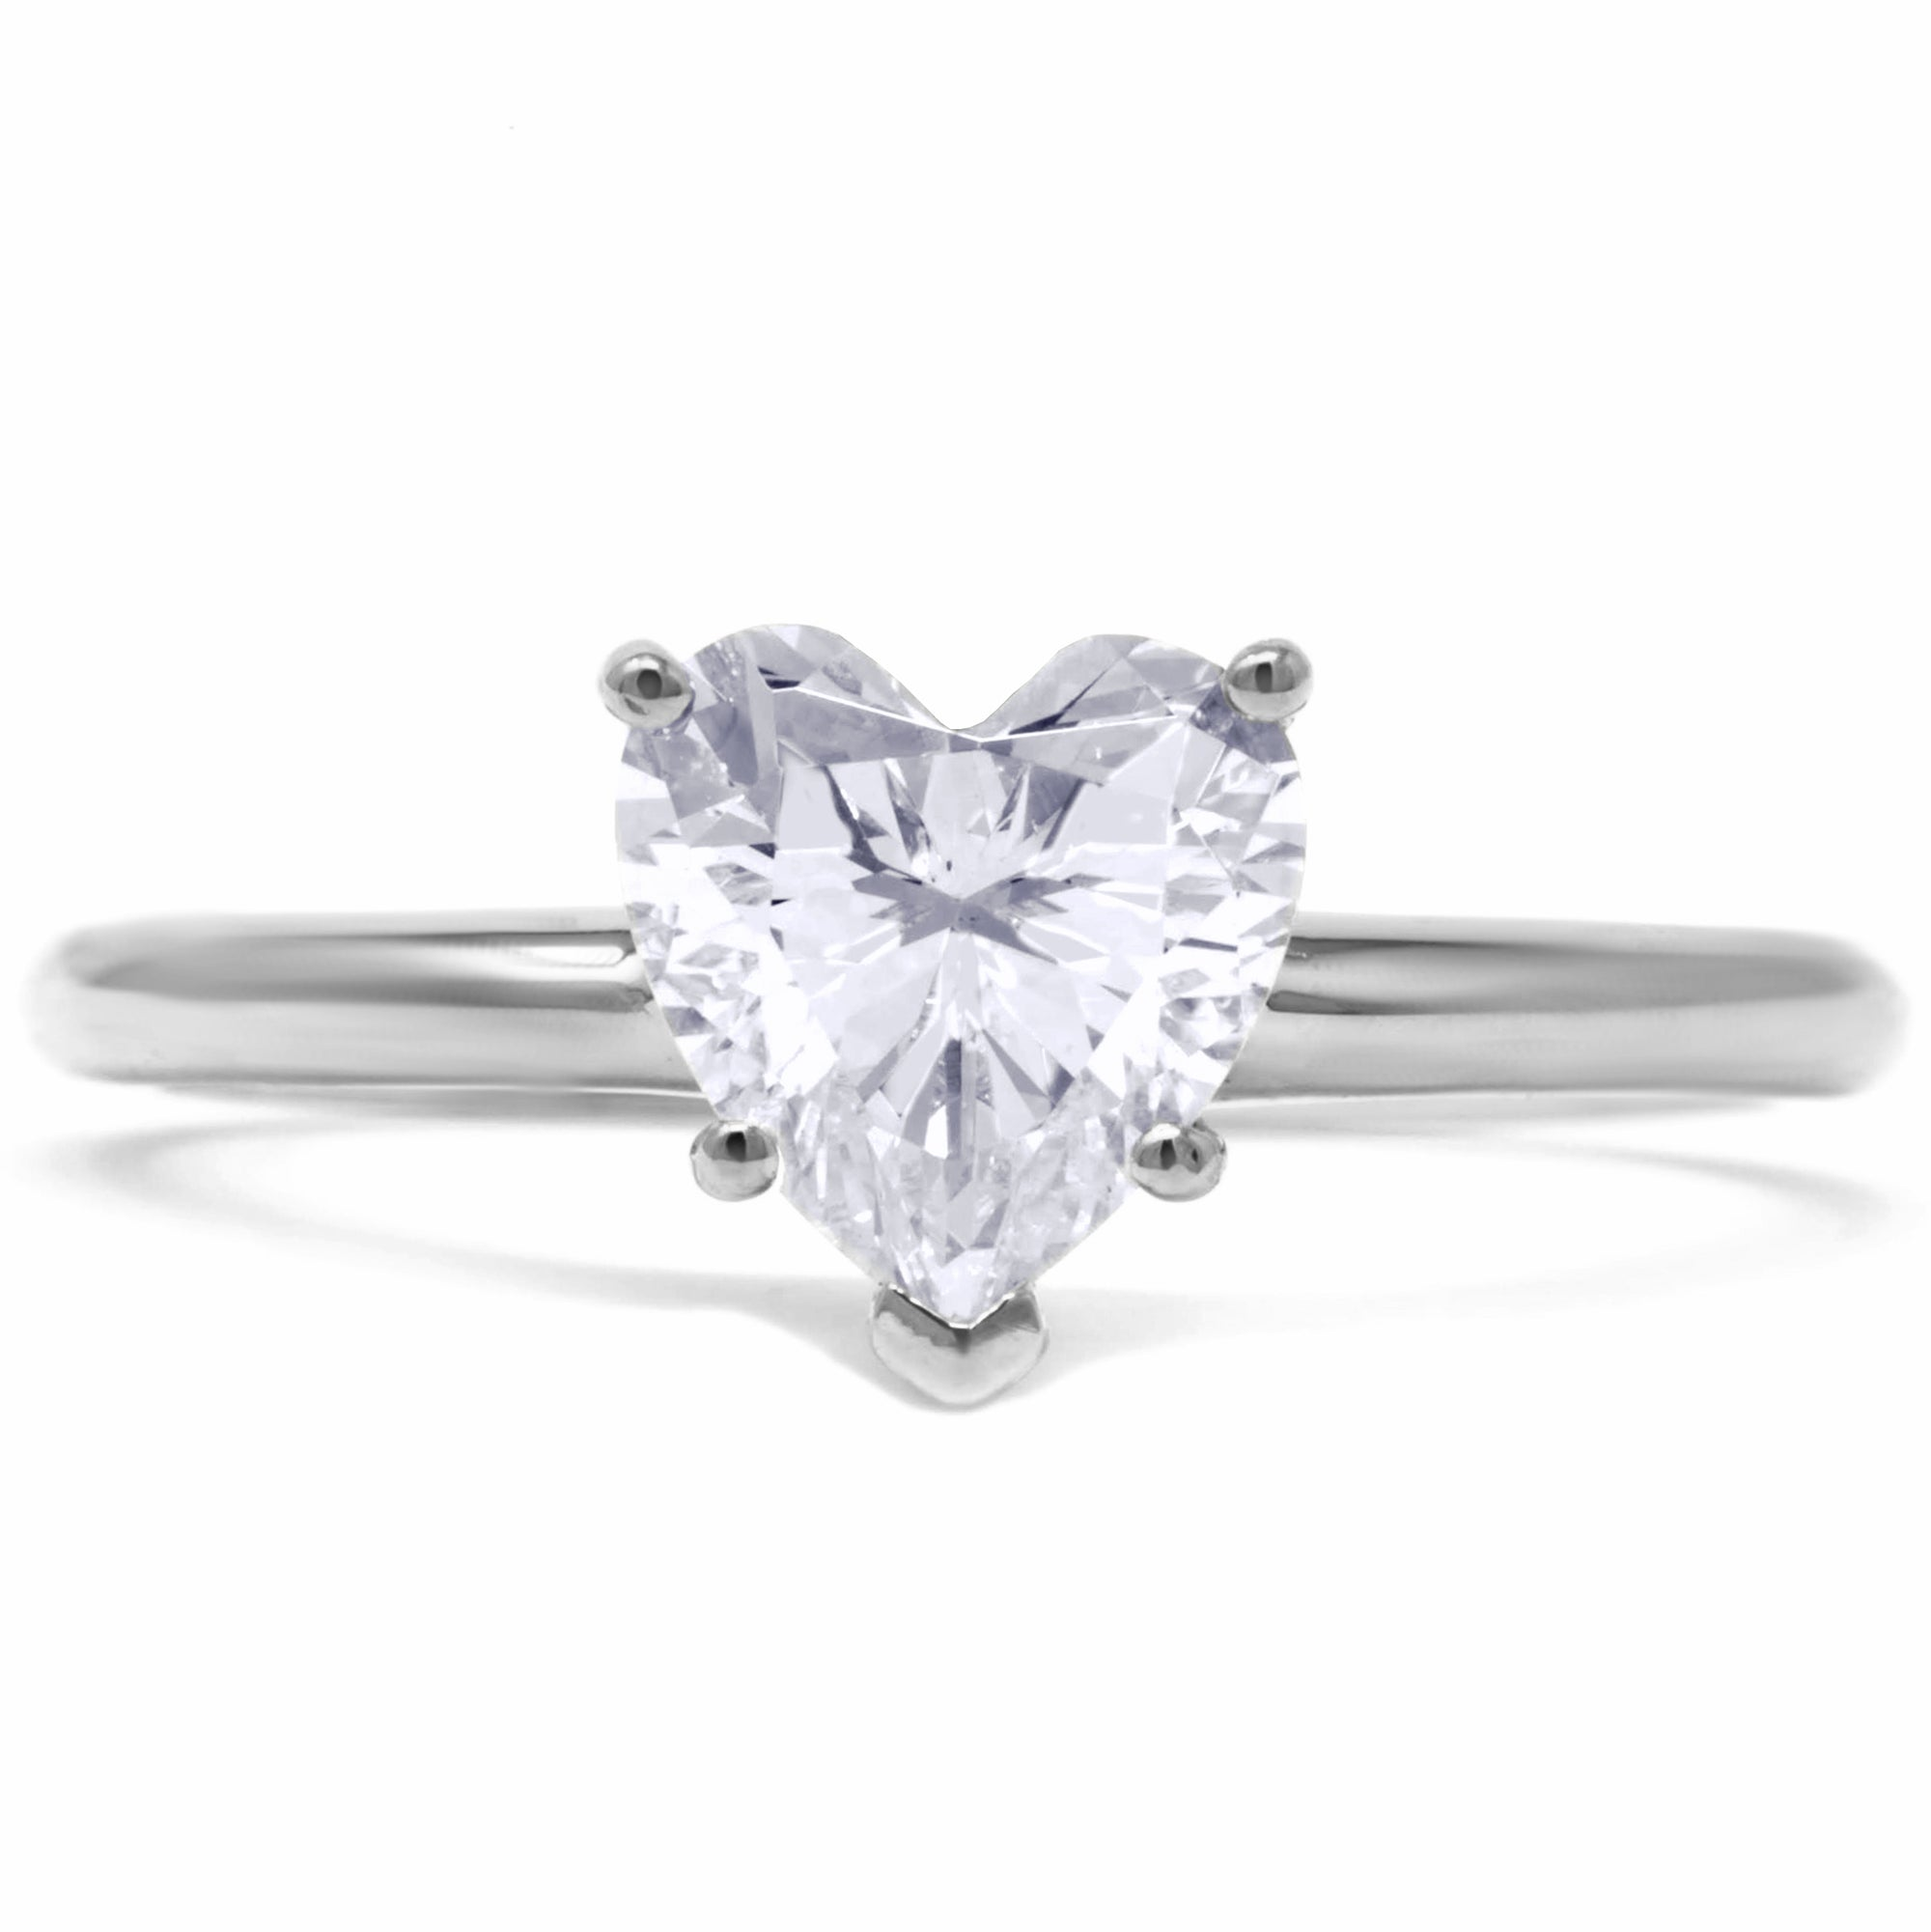 d4ede80c72a92 1 Ct. Heart Shape Solitaire Engagement Ring Solid 14K White Gold - Glamour  Life Diamonds